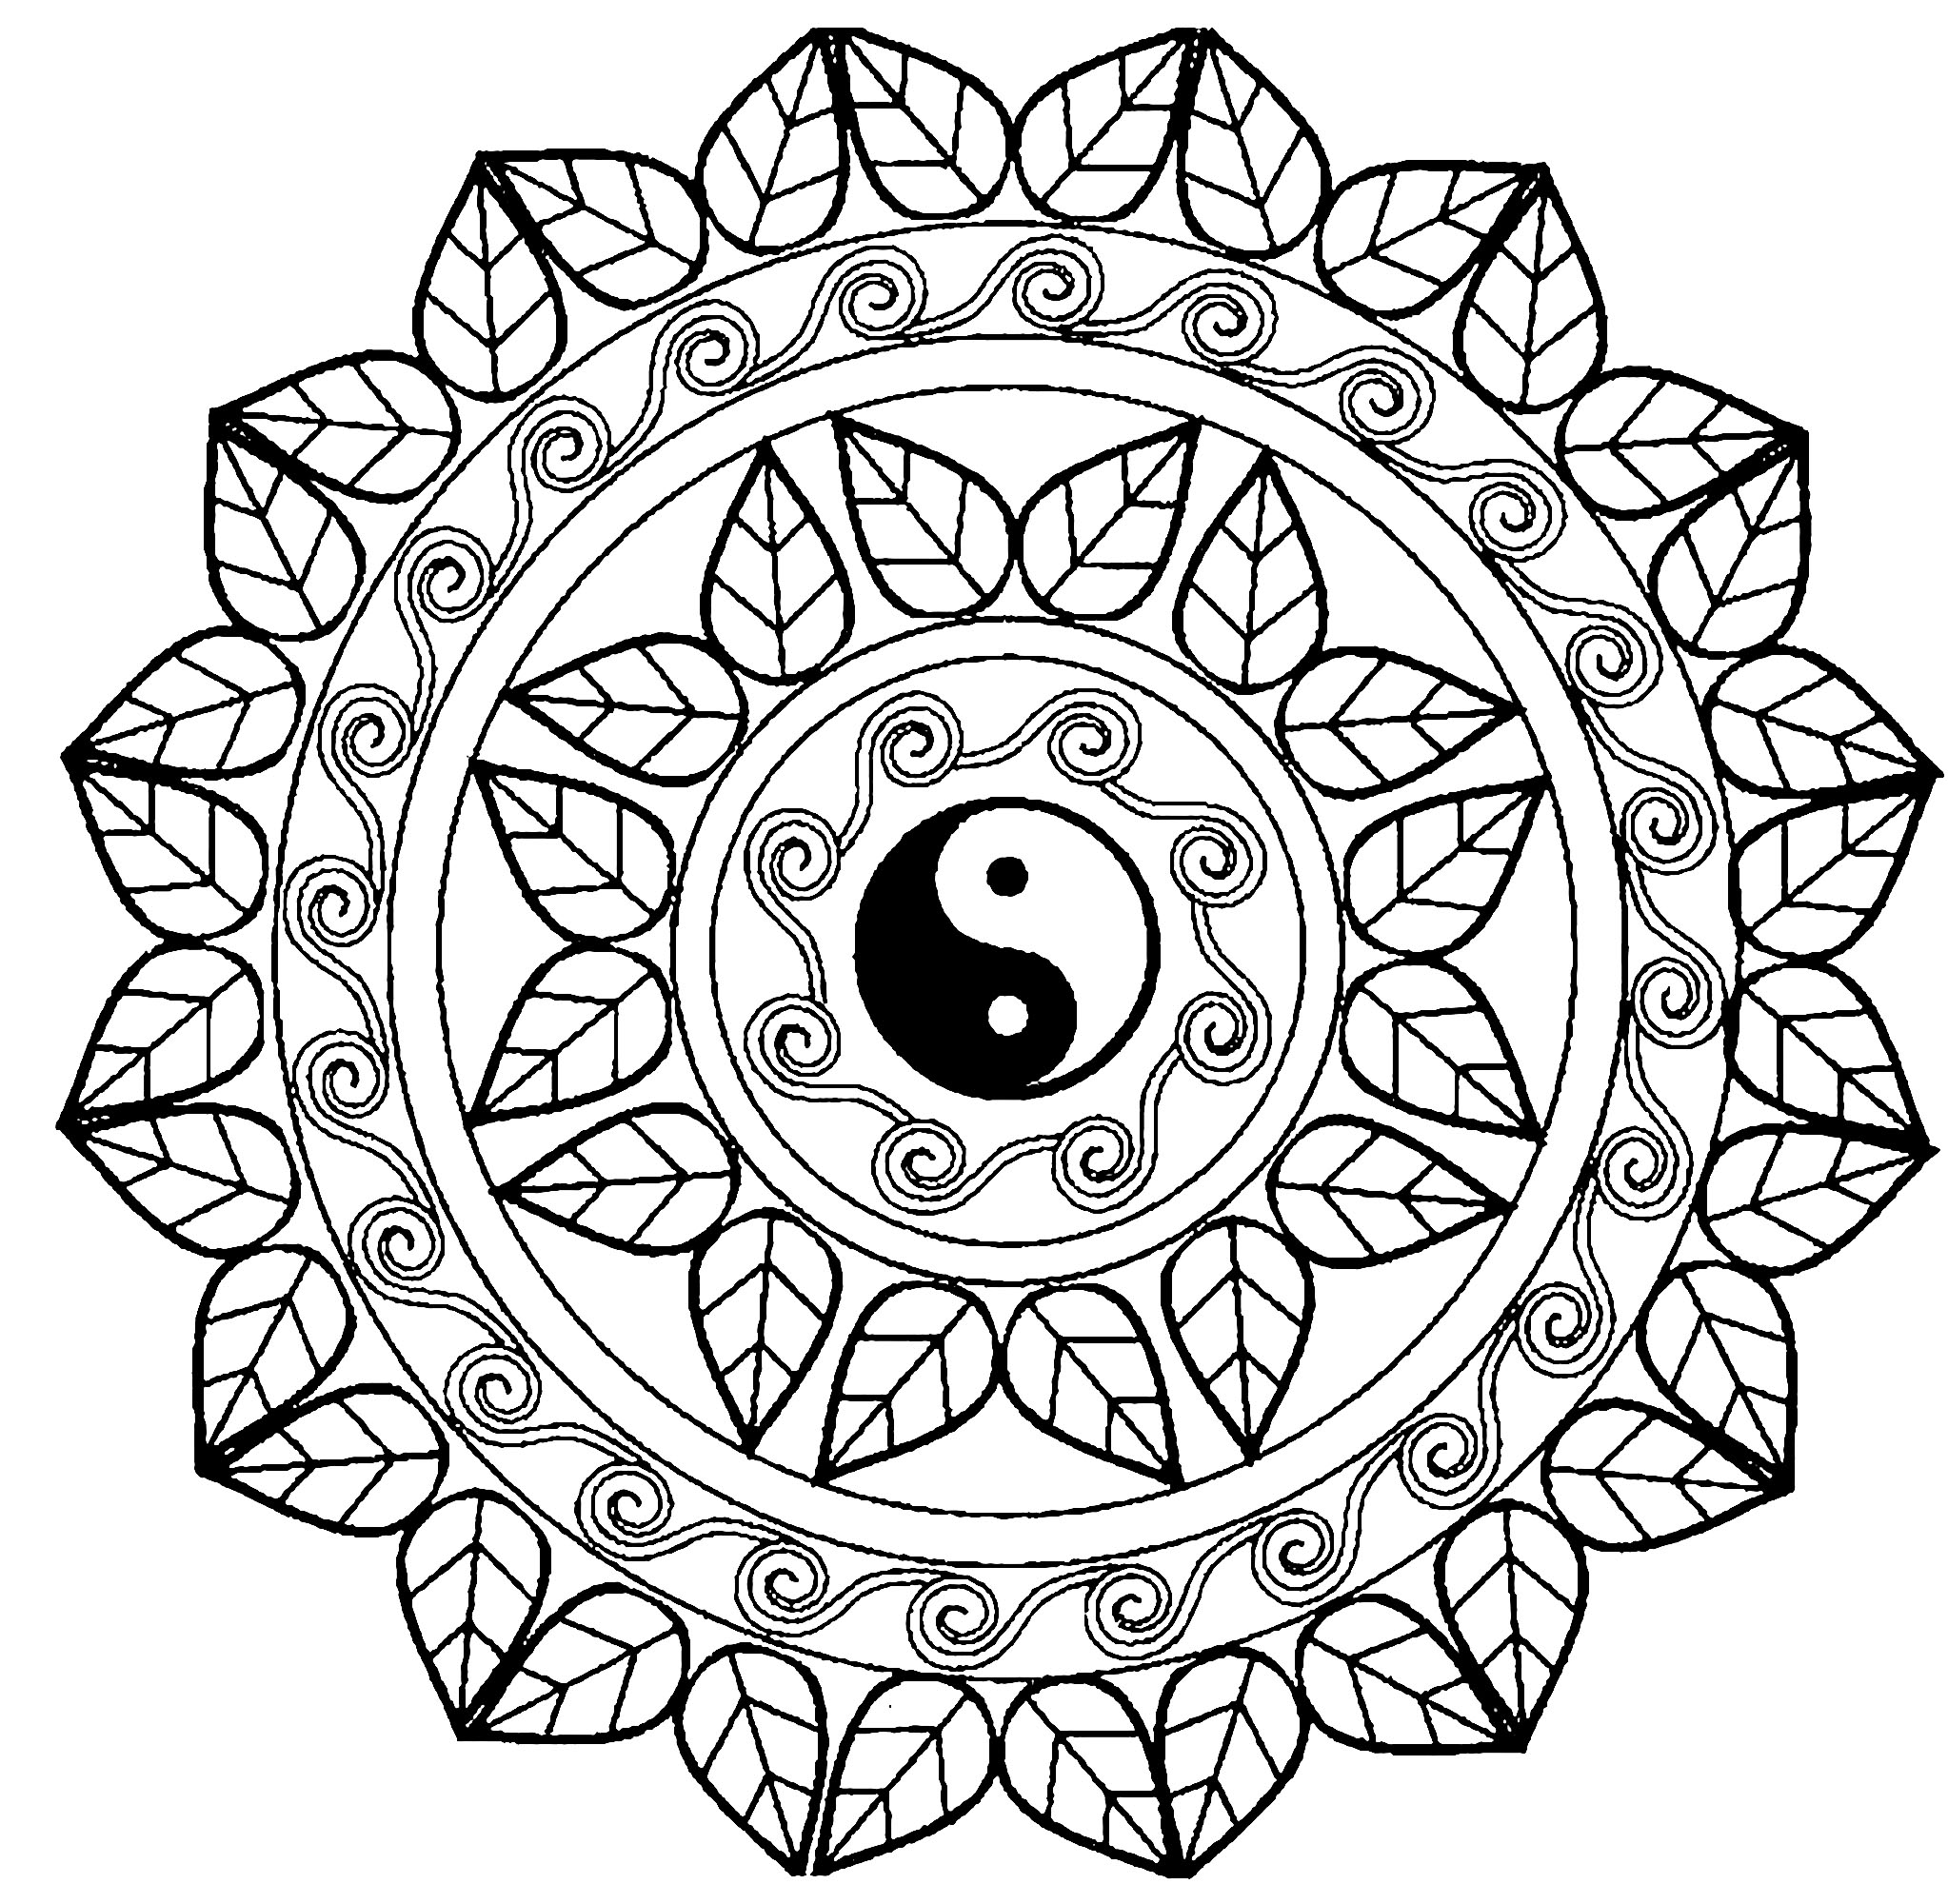 Incredible Zen & Anti-stress Mandala. Designing and coloring mandalas bring peace and tranquility. Mandalas offer balancing visual elements, symbolizing unity and harmony. Did you know ? first gained their popularity amongst the Hindus and the Buddhist religion.